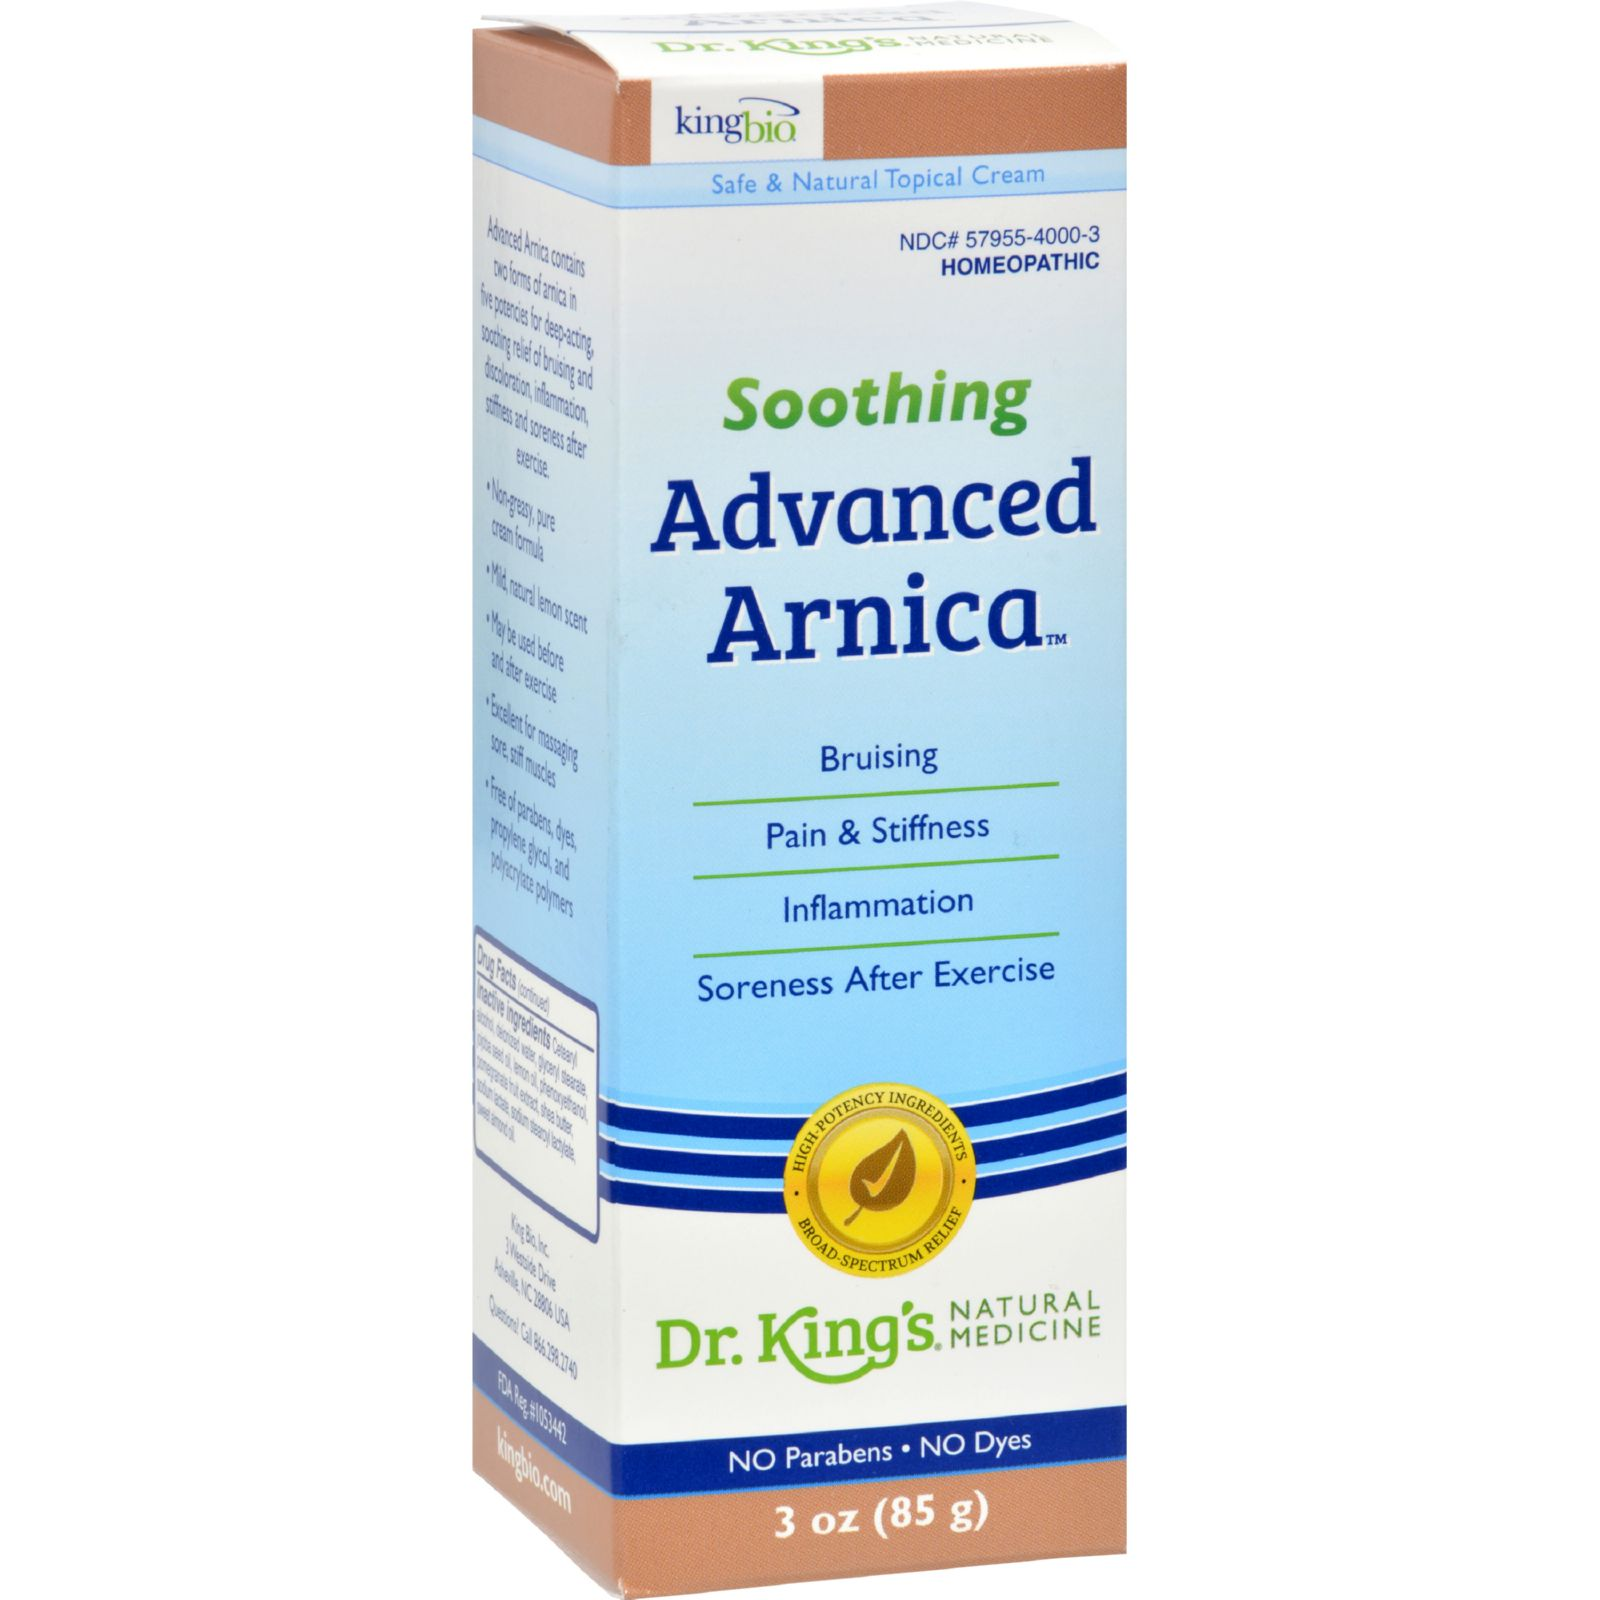 King Bio Homeopathic Advanced Arnica Cream - 3 Oz